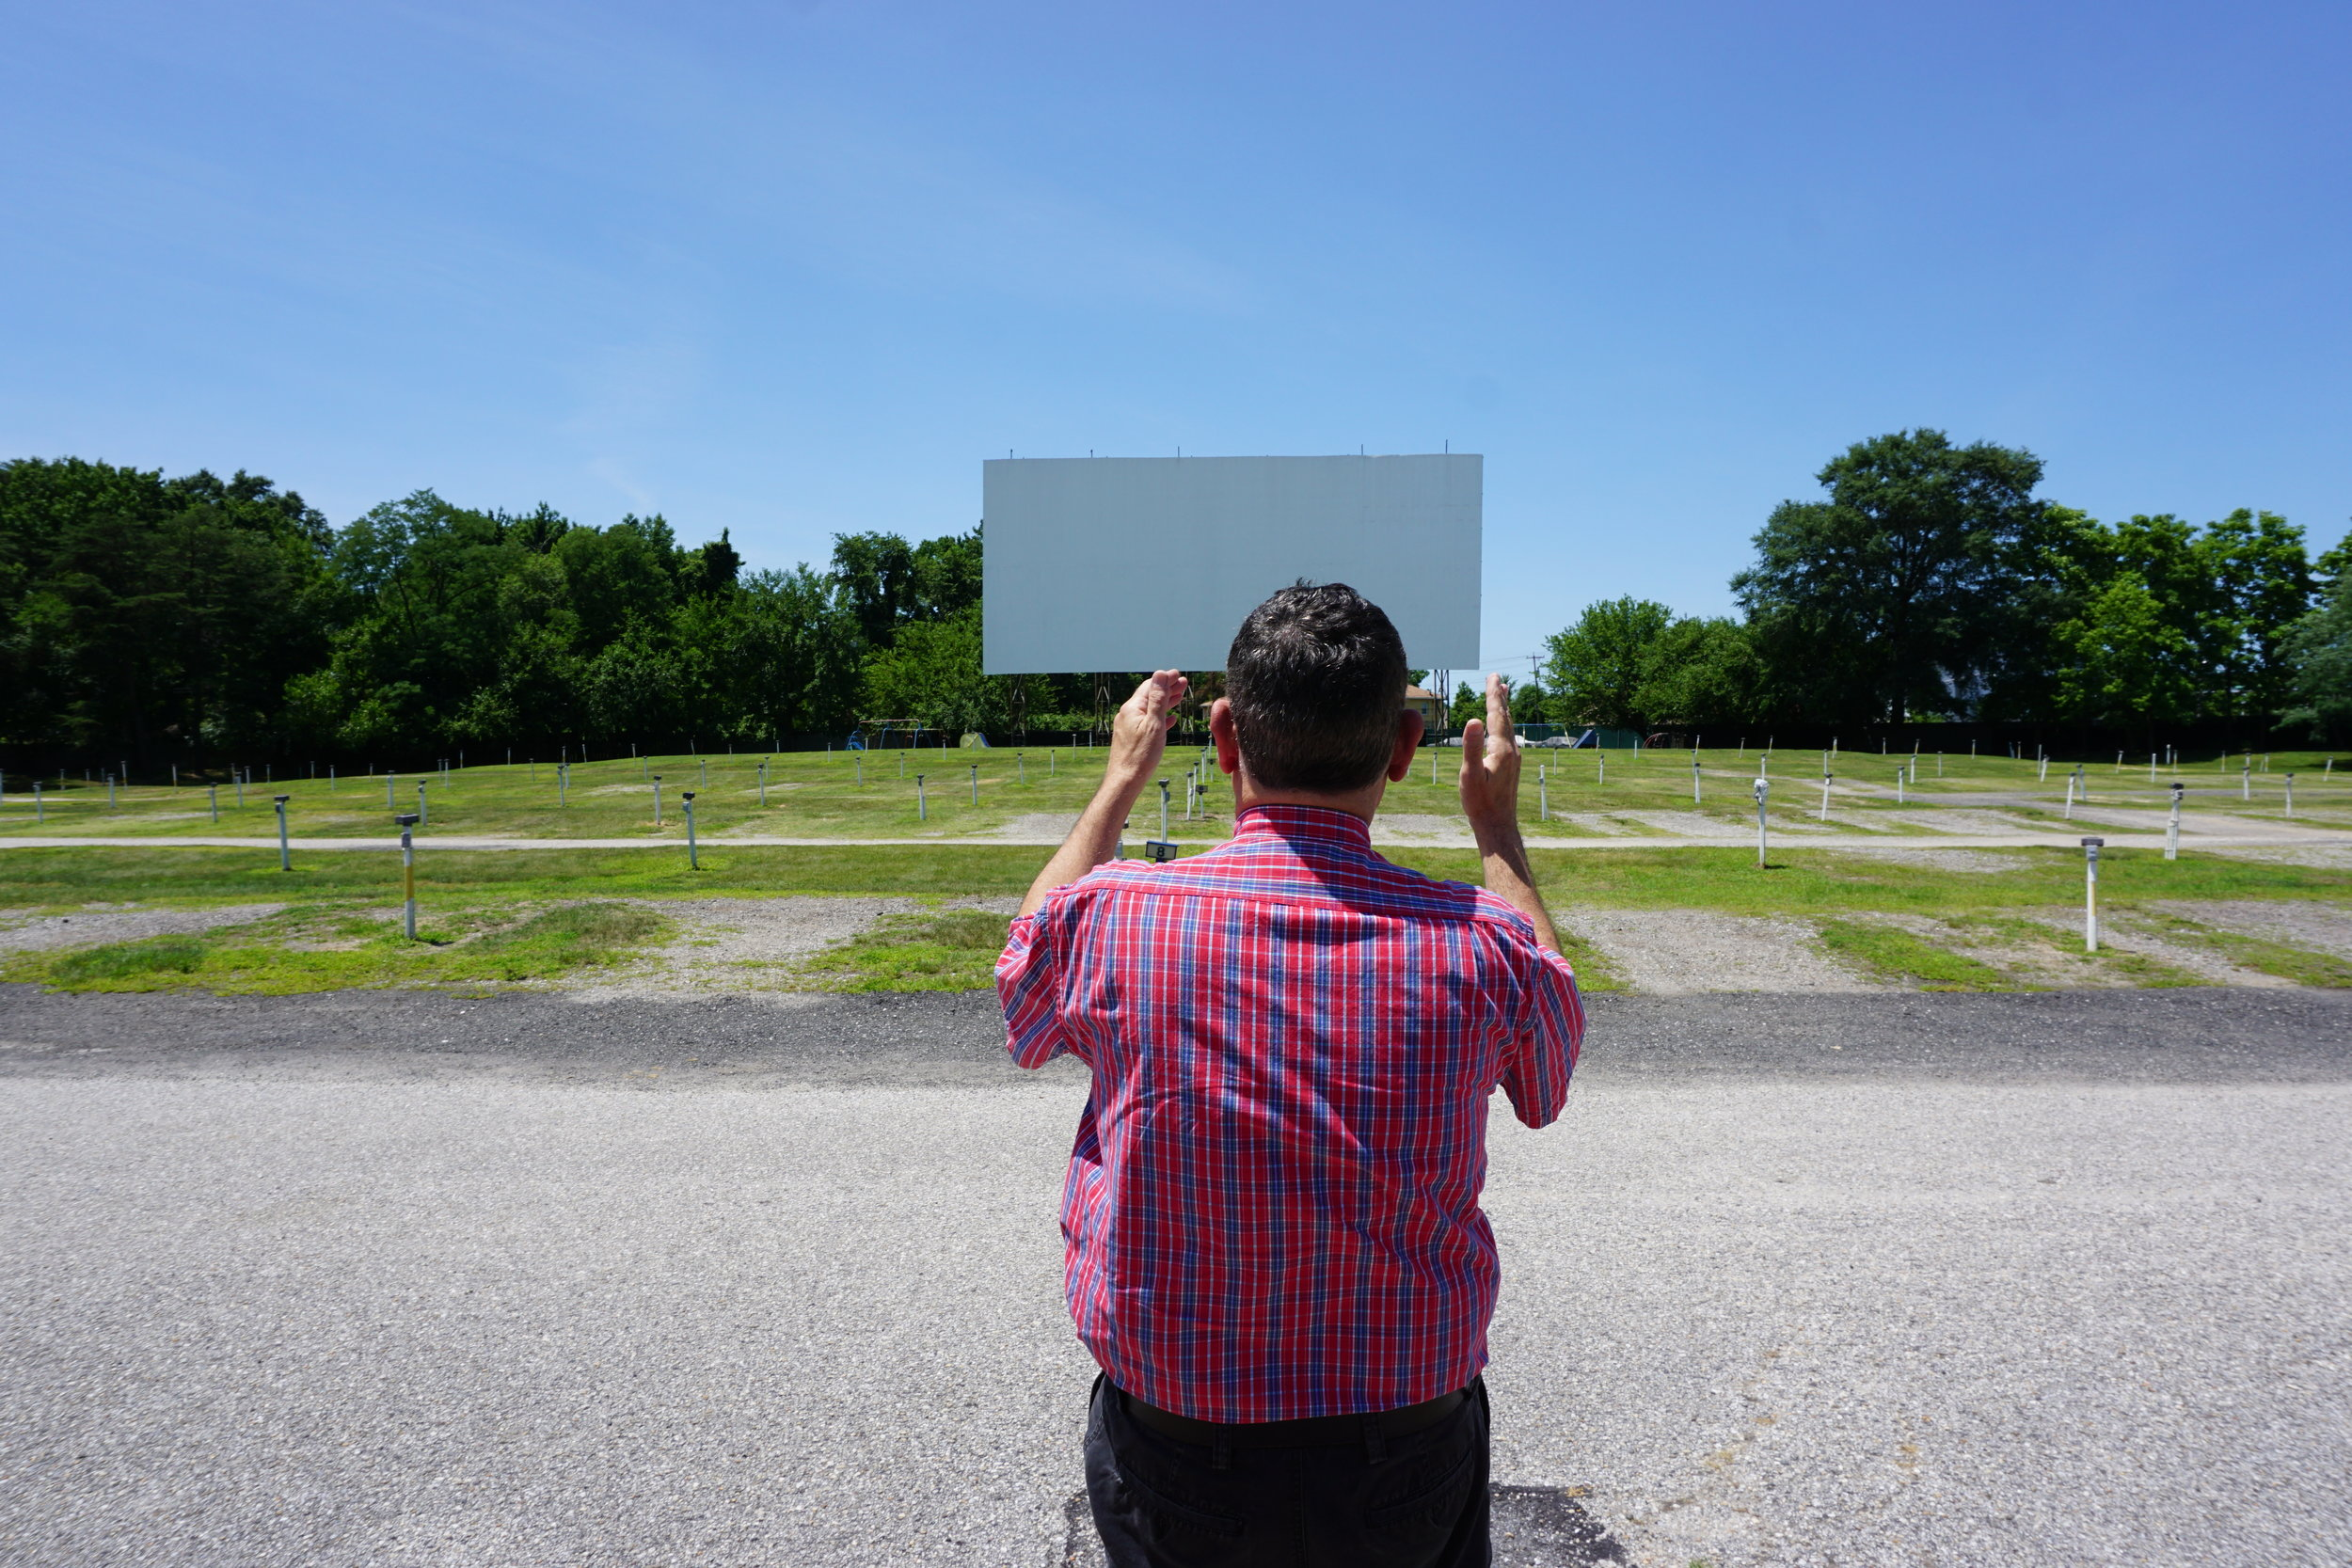 D Vogel and the largest drive-in screen in the country